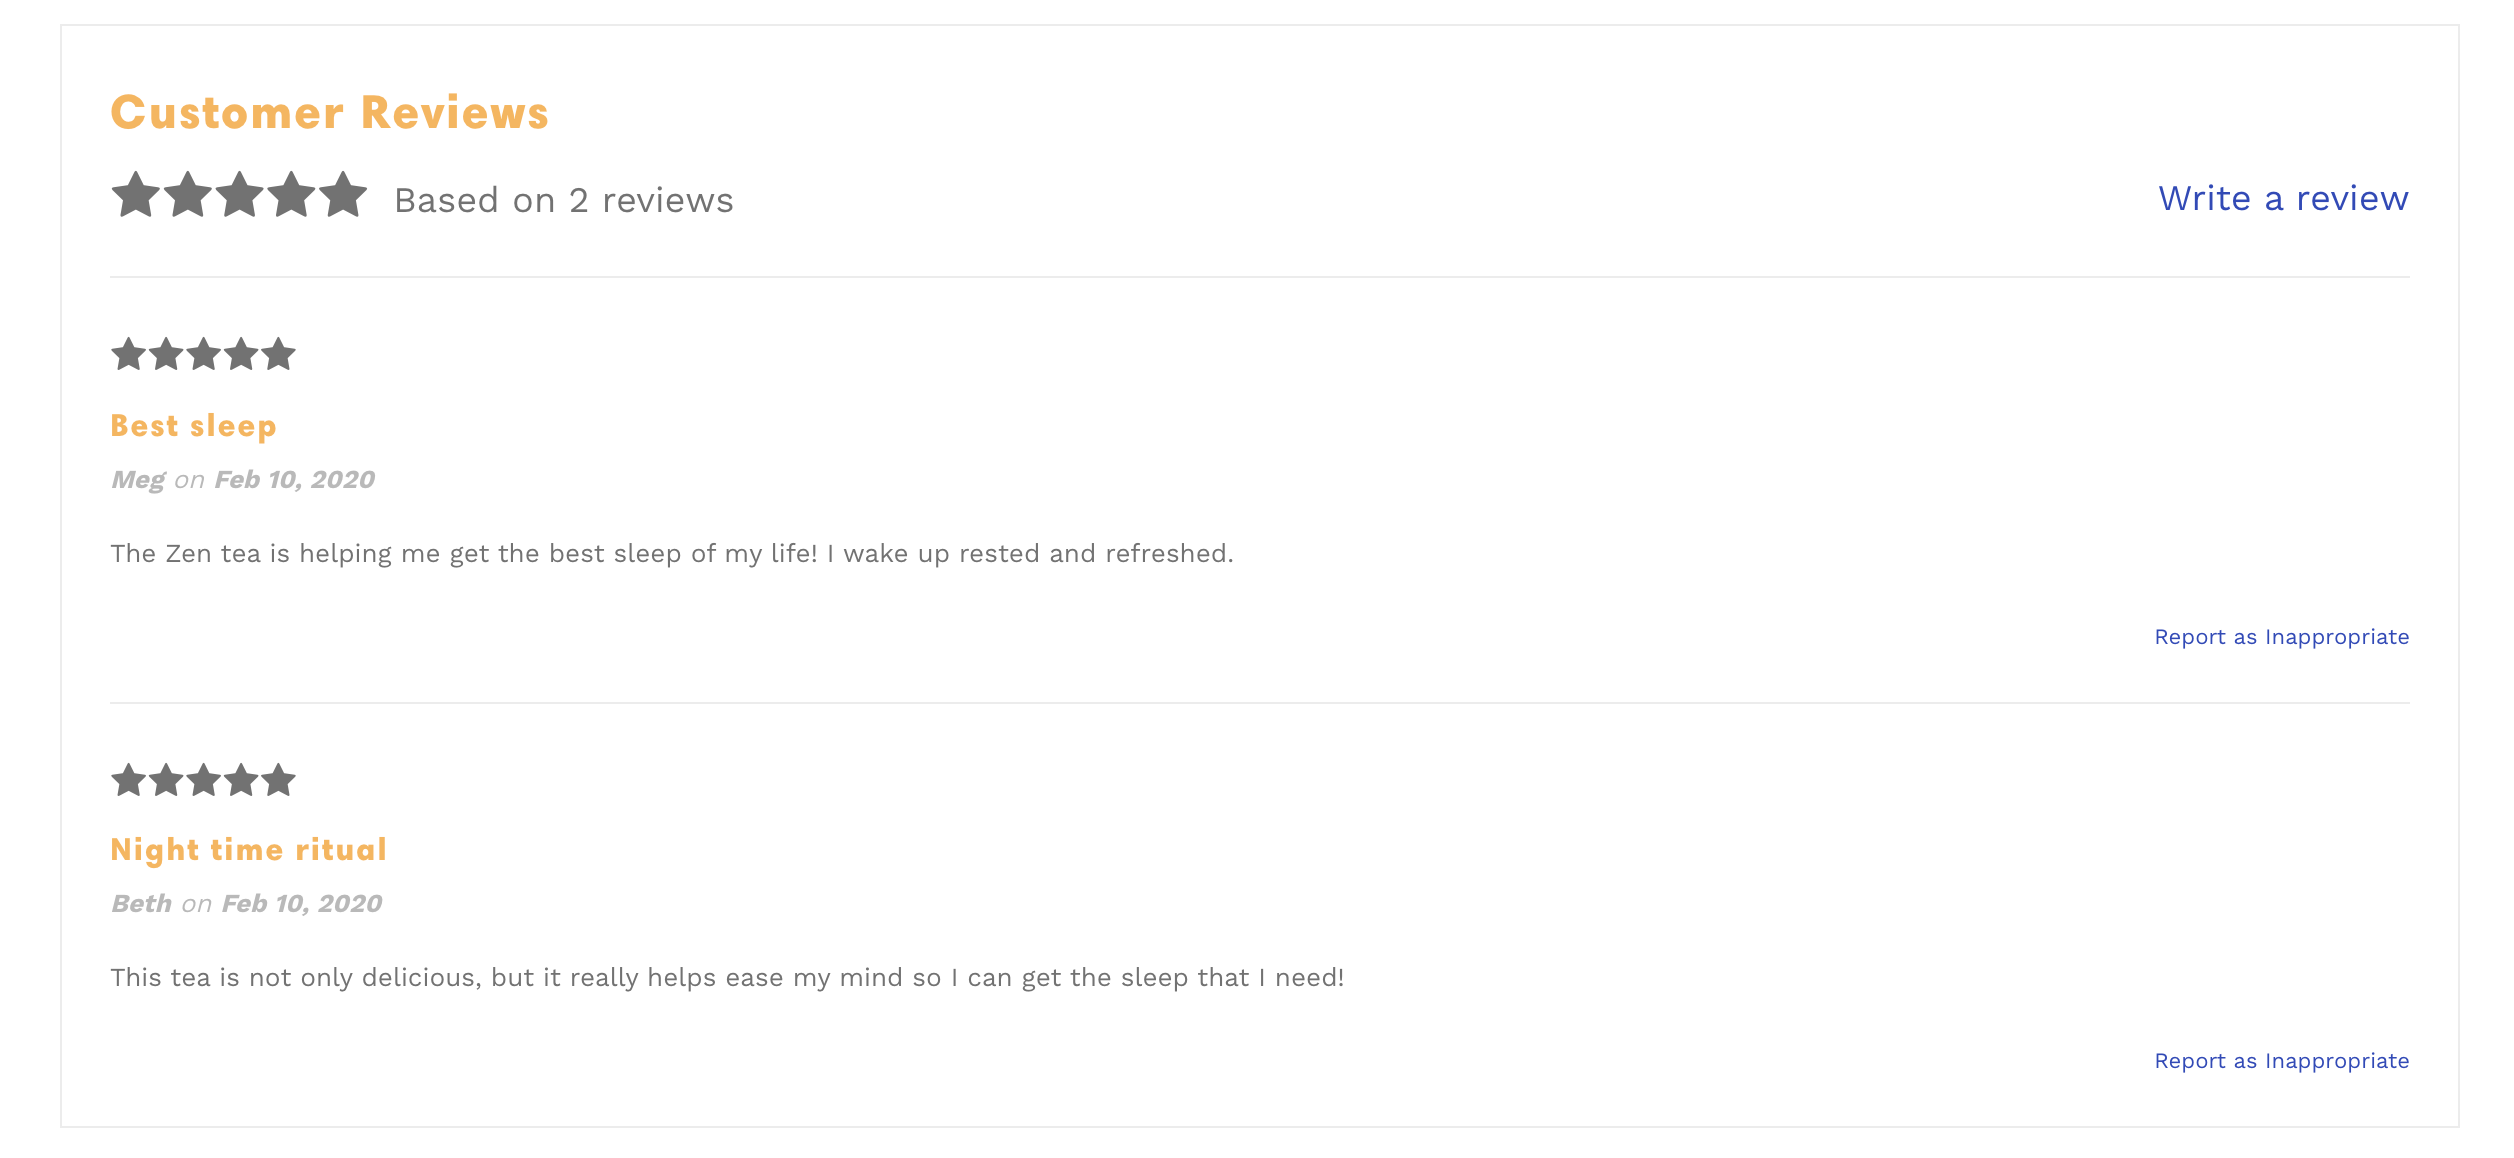 product-page-reviews-example.png